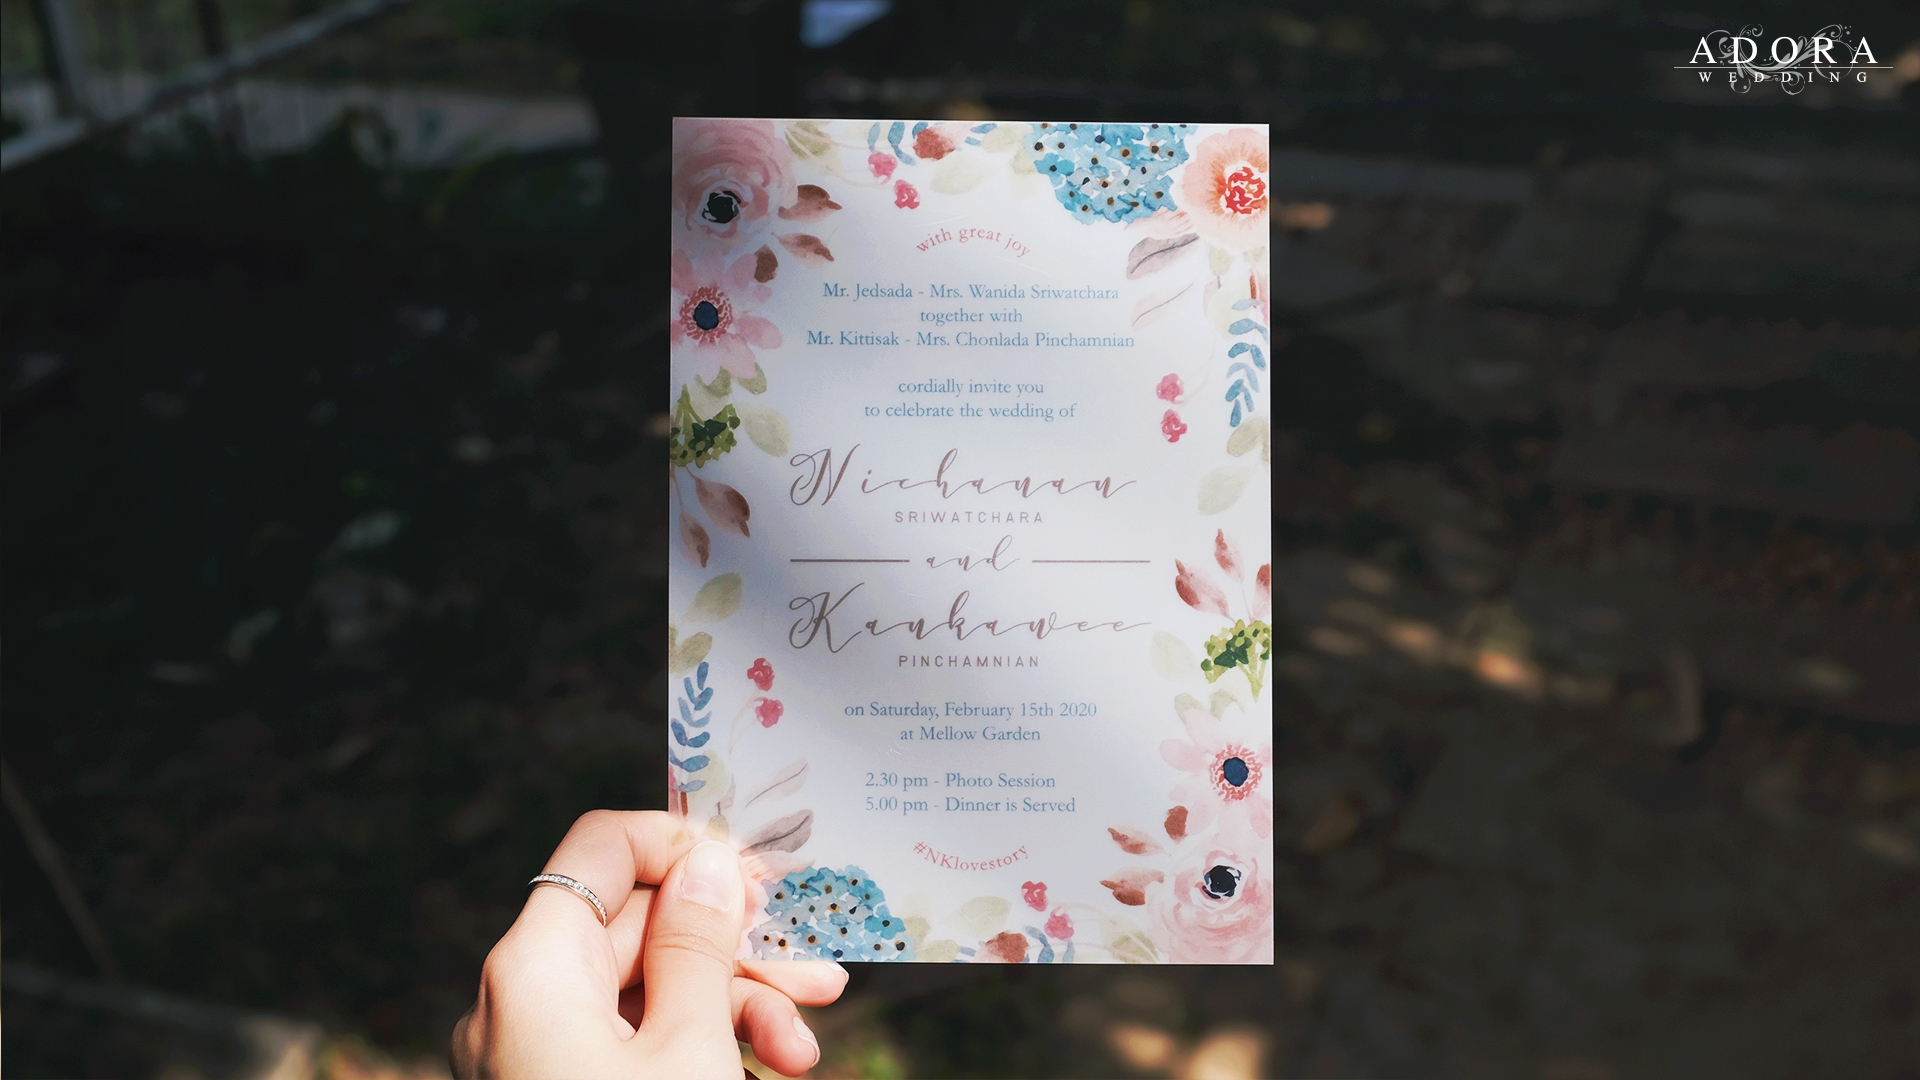 B120LM-wedding-card-6